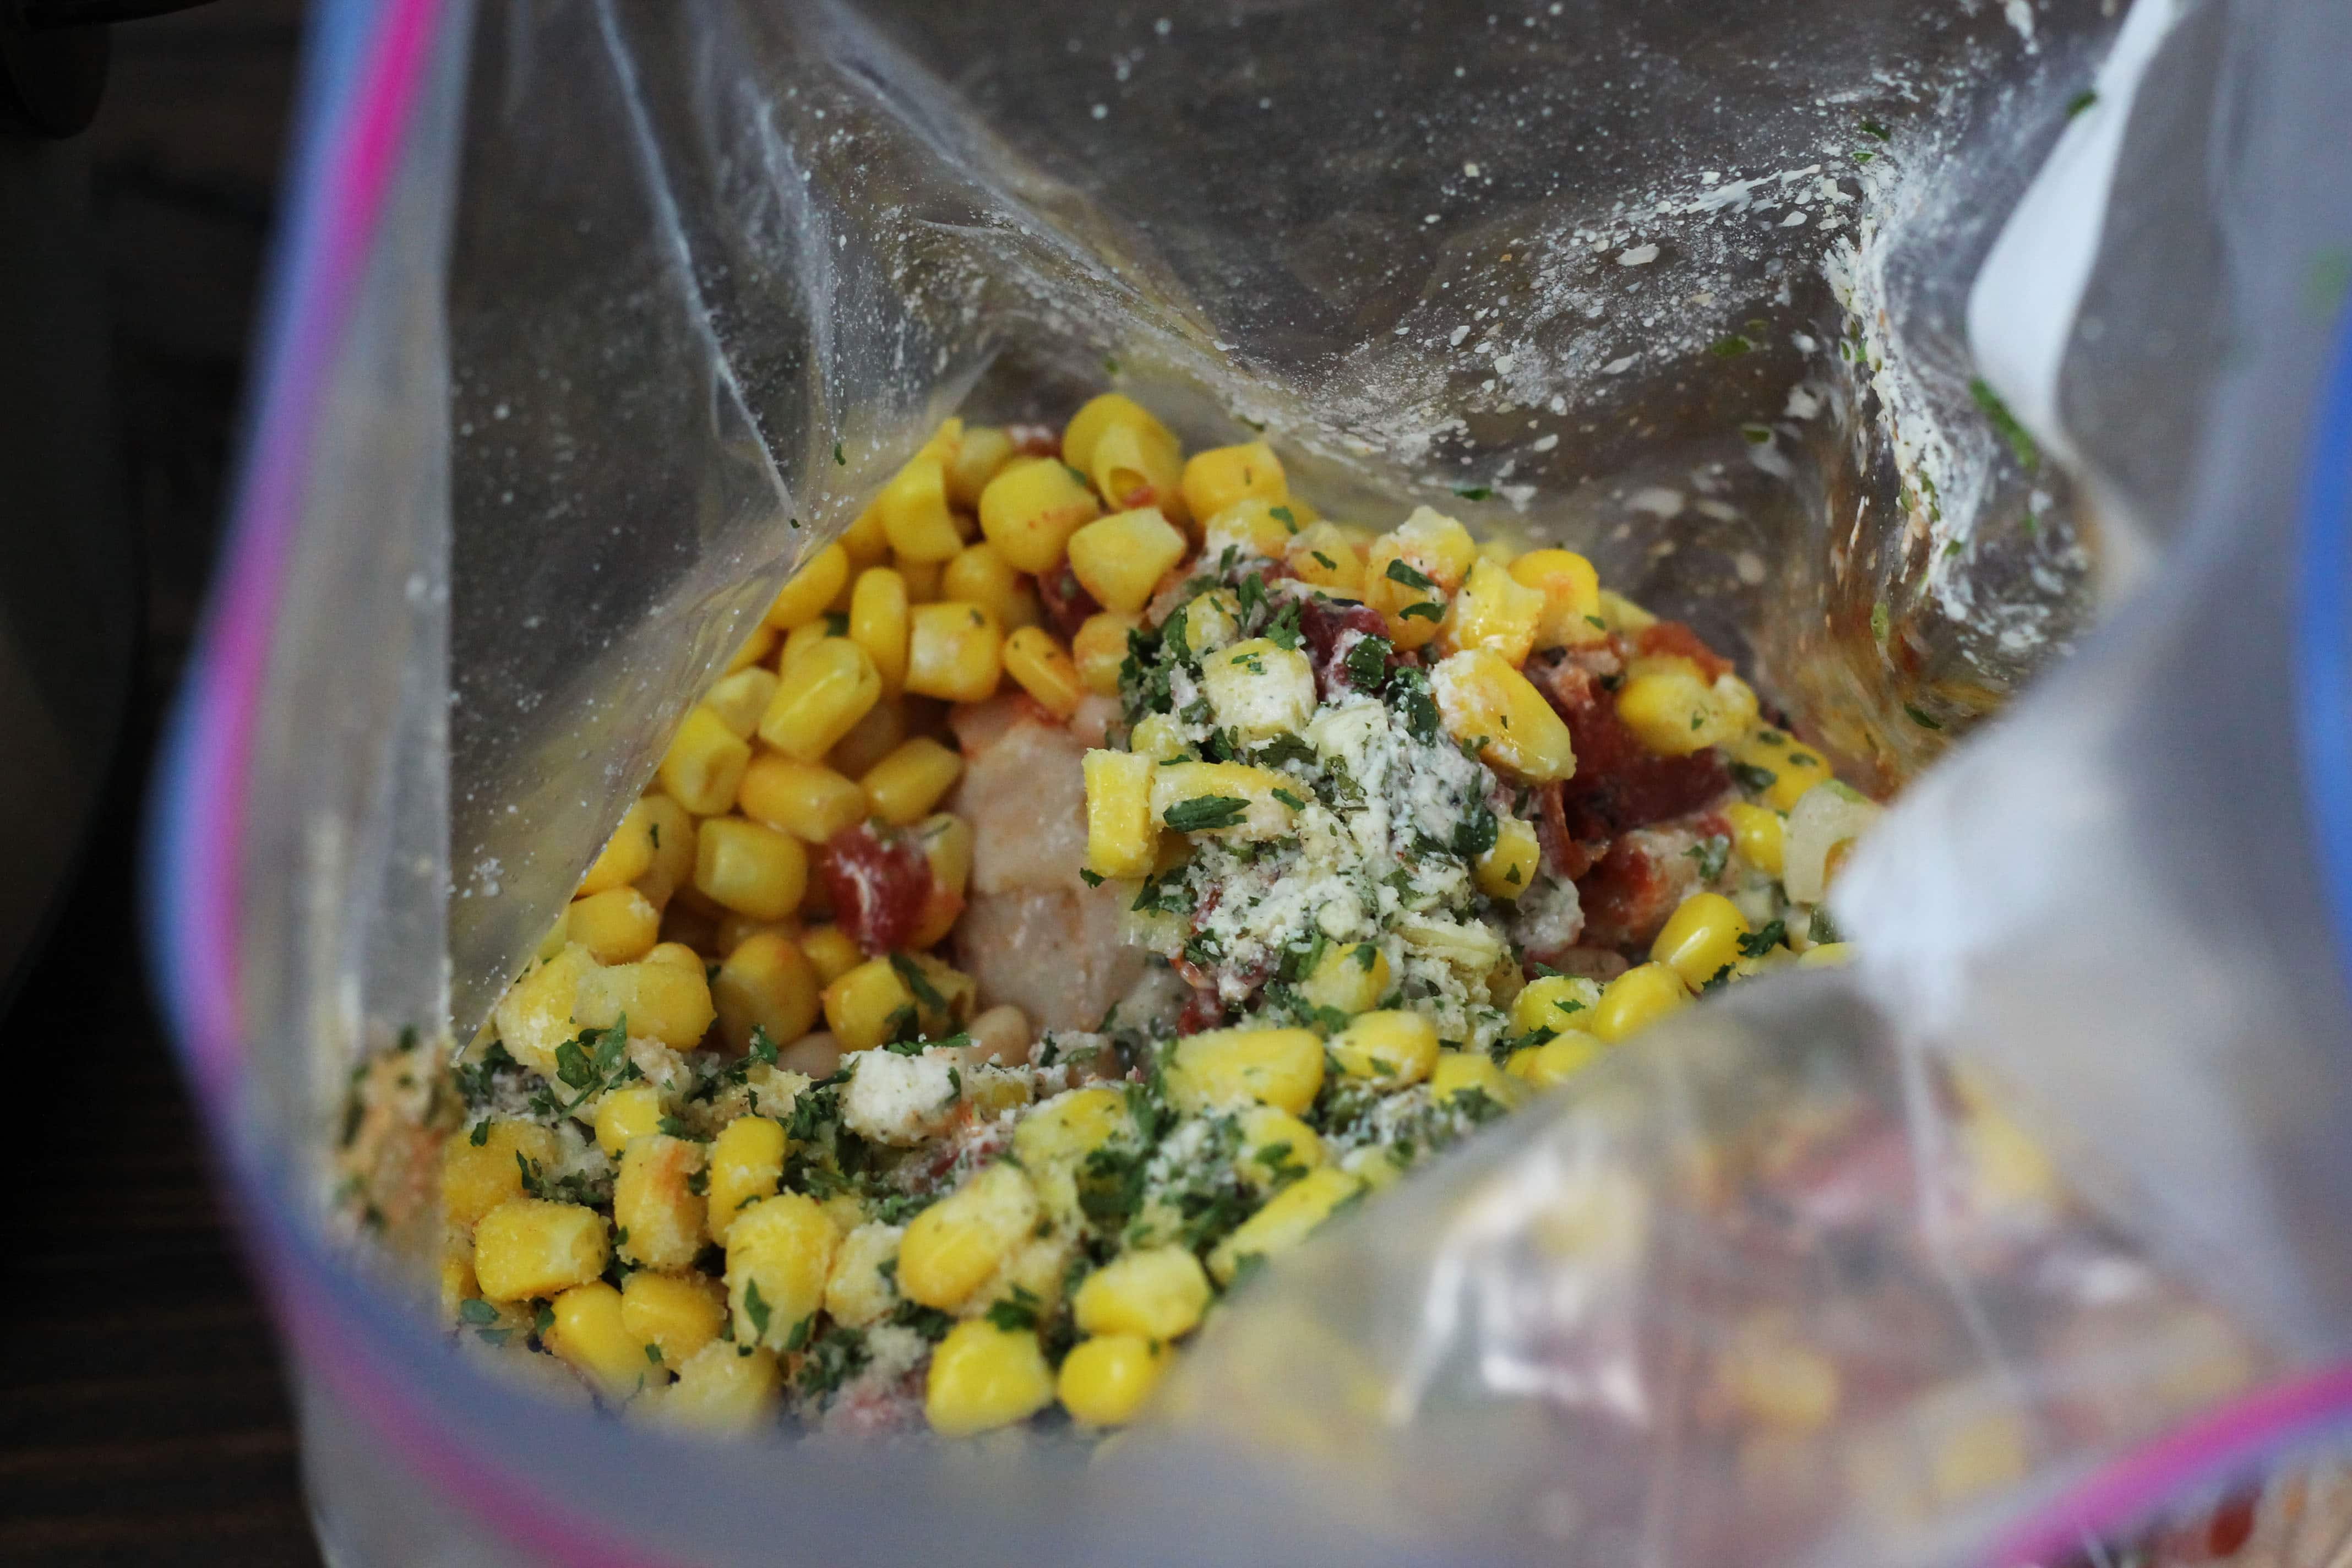 corn with uncooked chicken with feta cheese and cilantro, with red tomatoes, in a clear zip lock baggie.